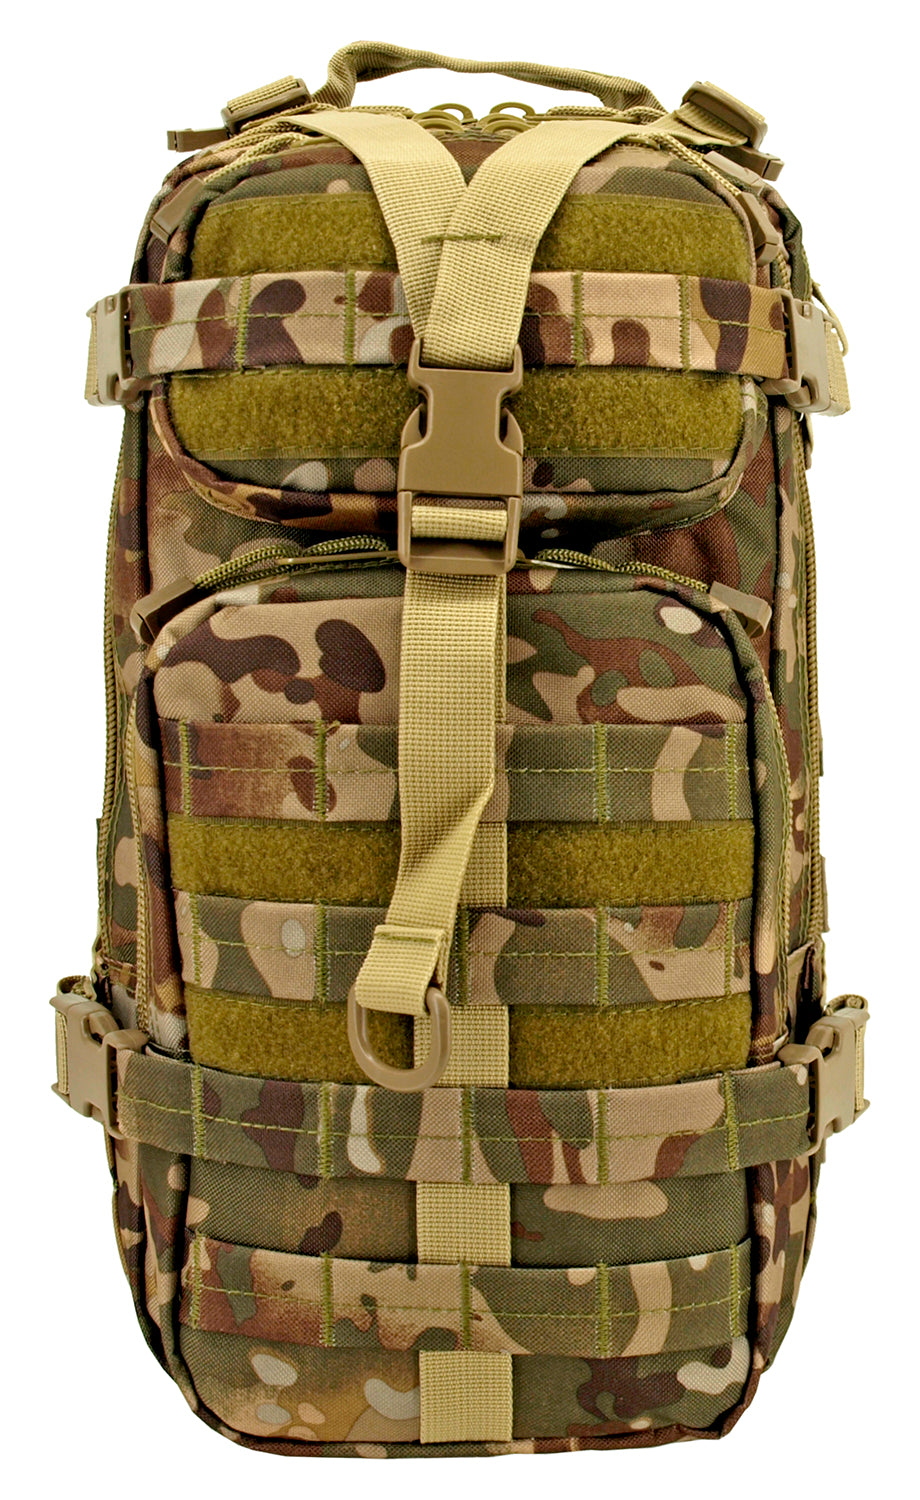 Tactical Assault Backpack - Operational Camo